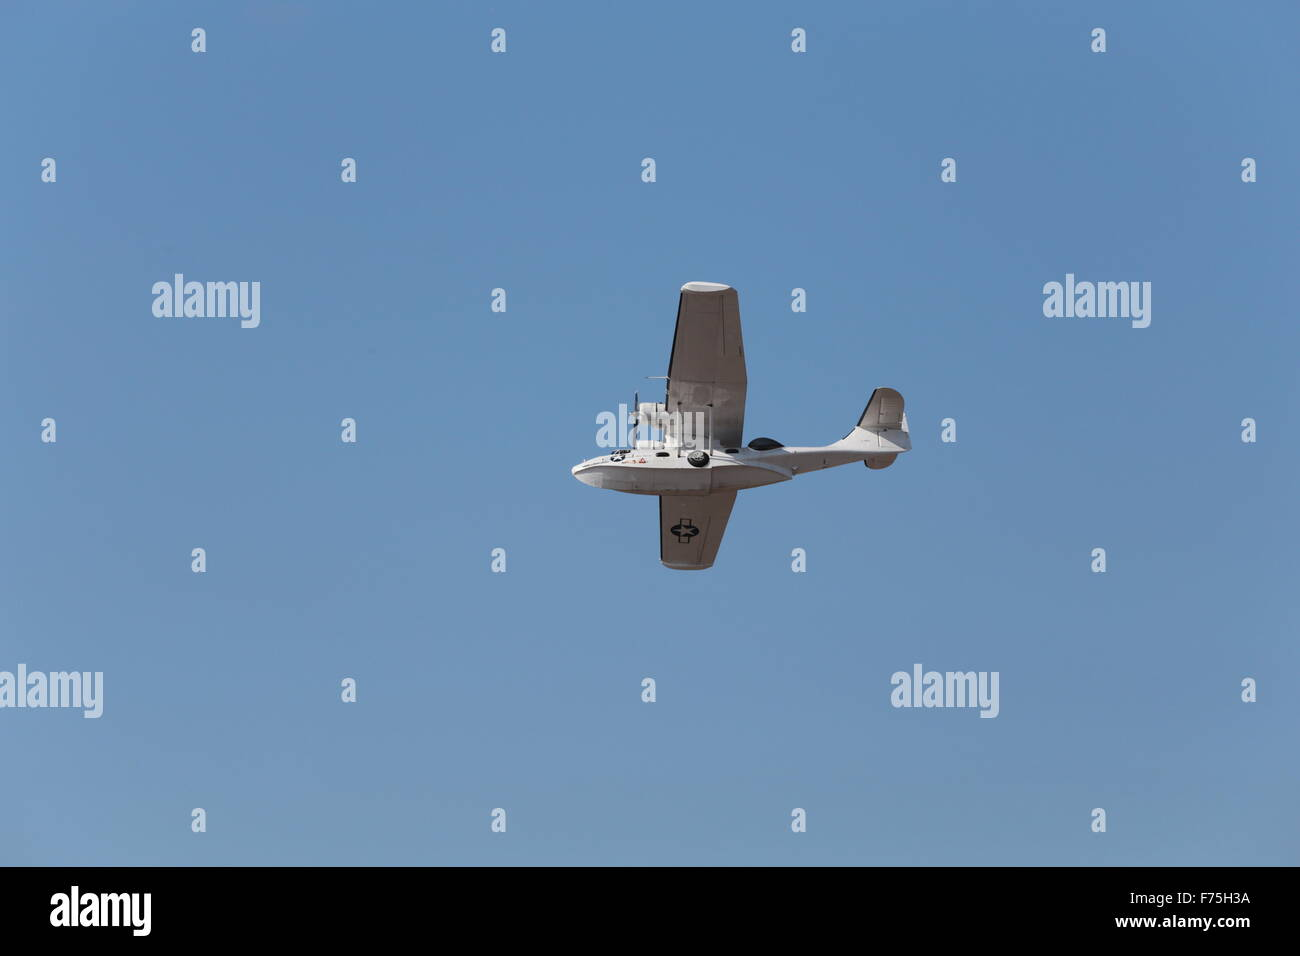 Catalina Flying Boat photographed at Southport airshow Lancashire in September 2014 Serial No. 433915 - Stock Image